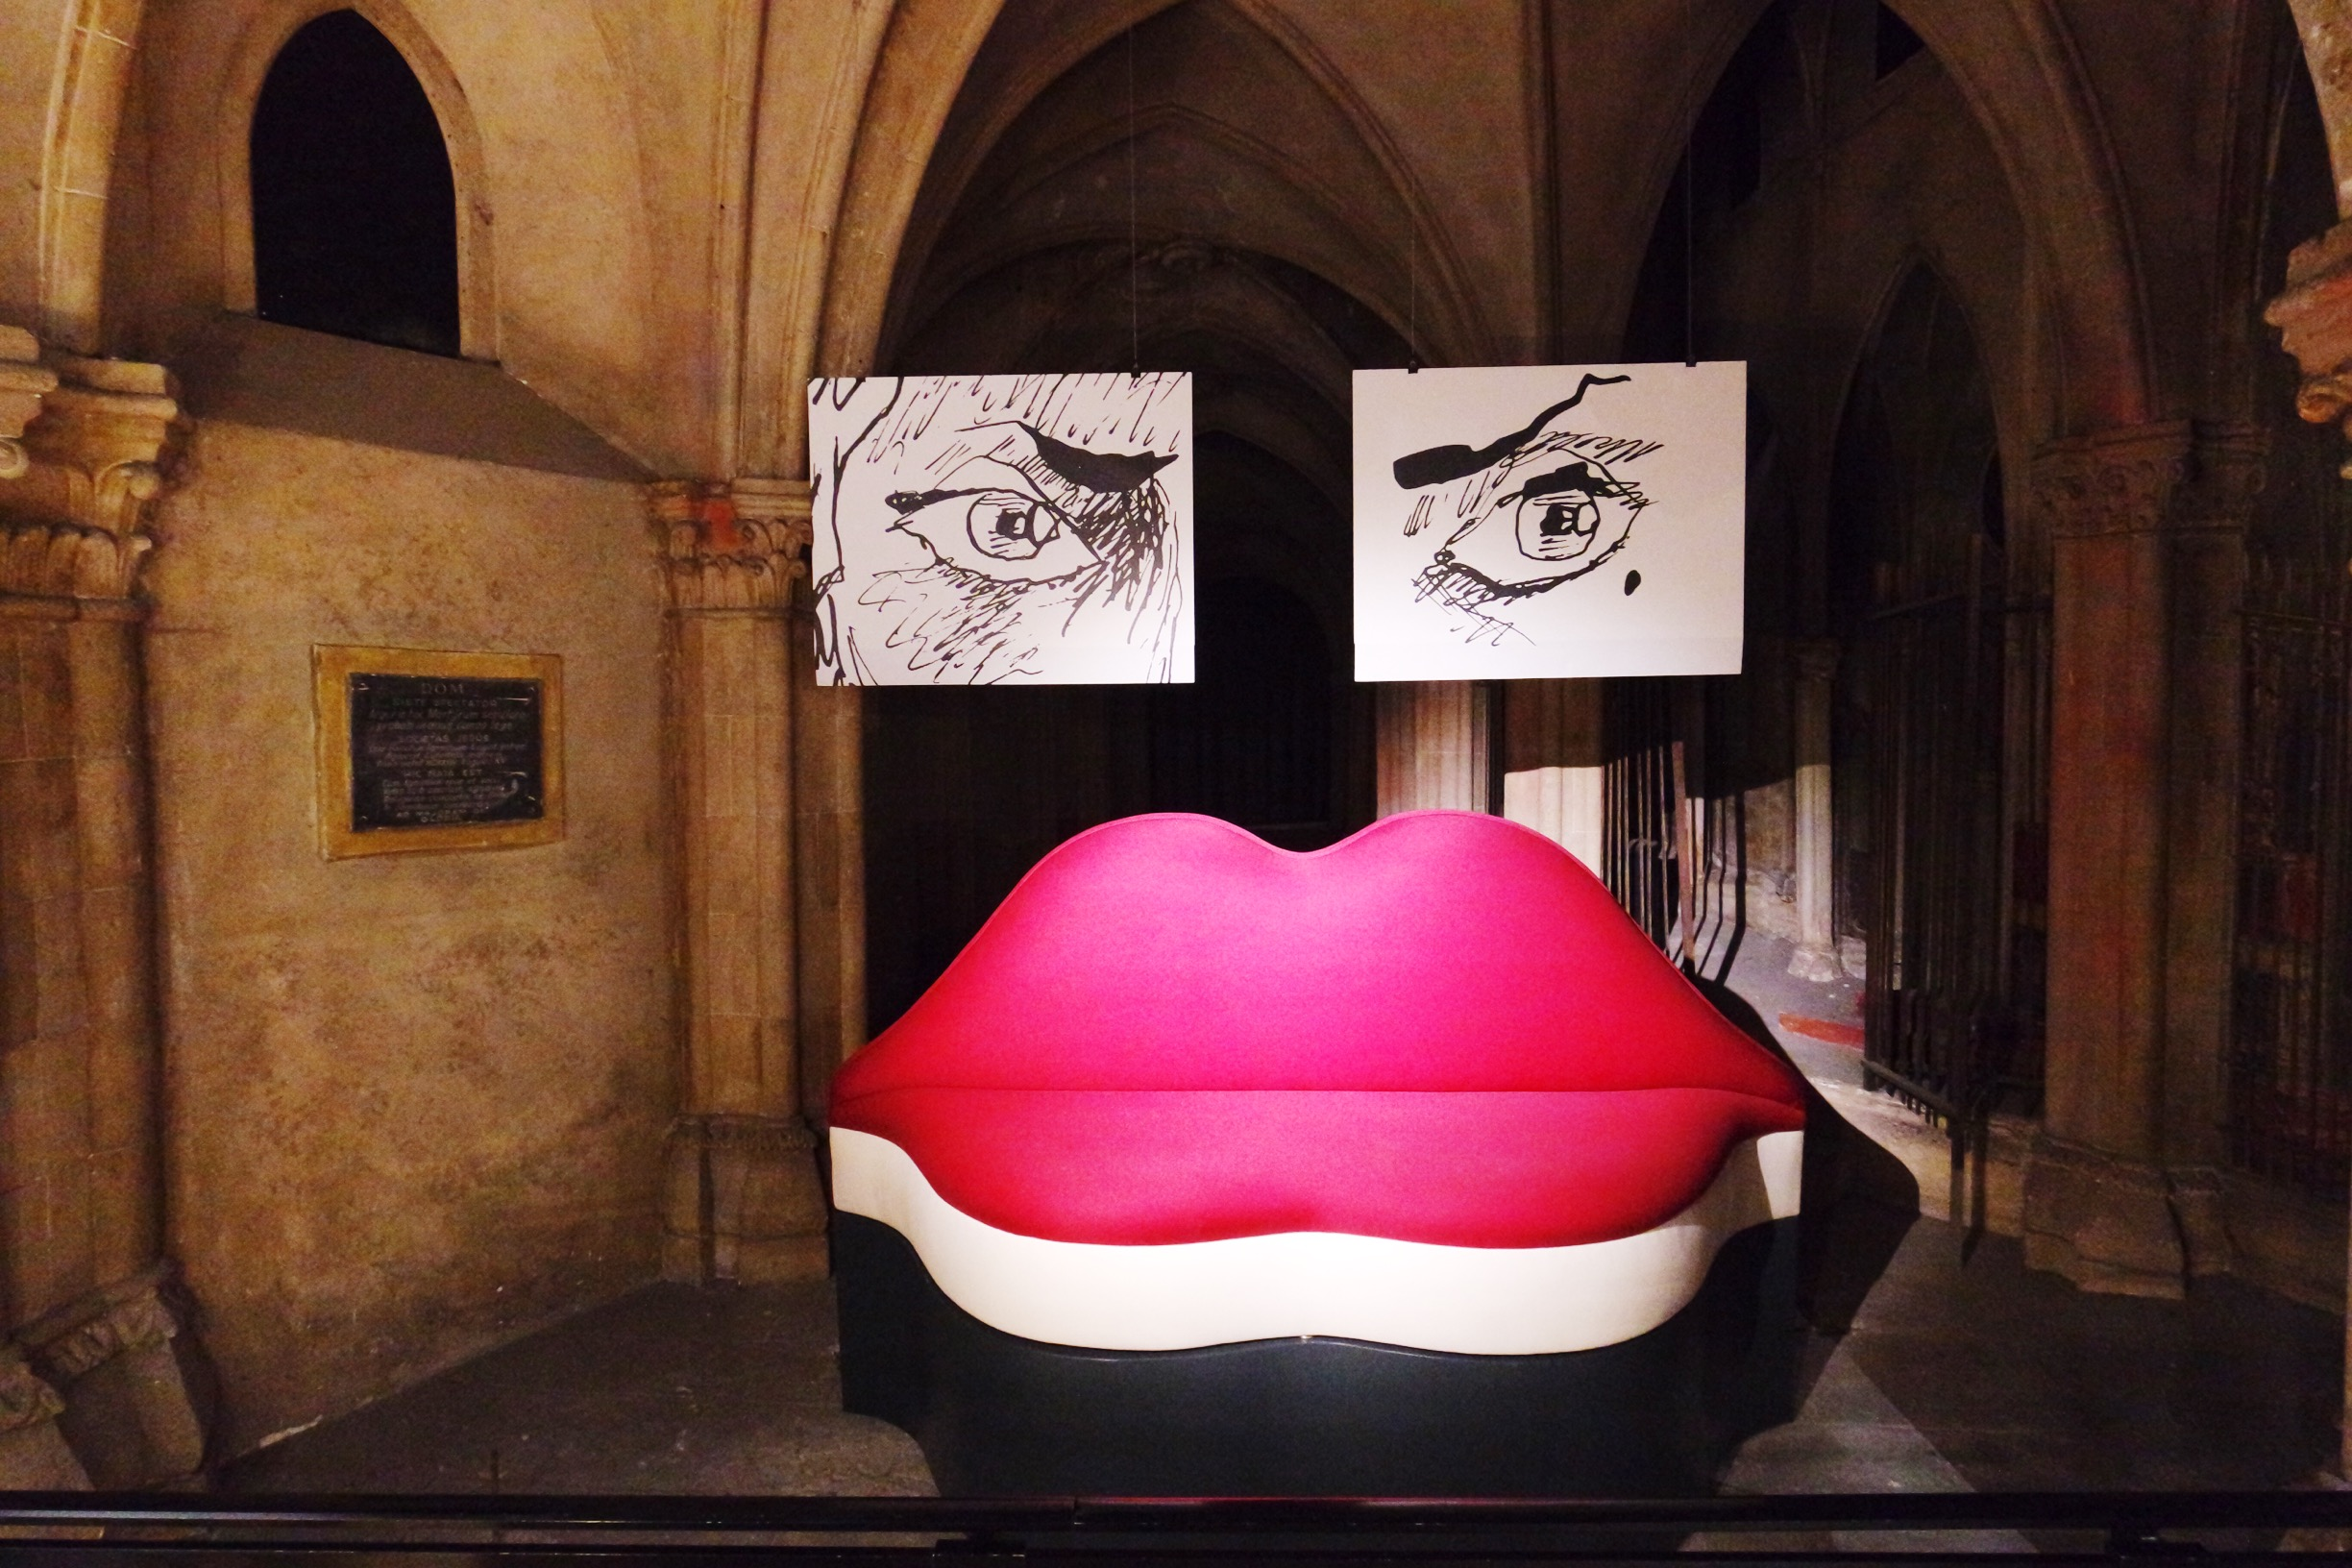 Canapé-Bocca-Mae-West-Salvador-Dali-dessins-Joann-Sfar-exposition-Espace-Dali-Paris-Montmatre-photo-usofparis-blog